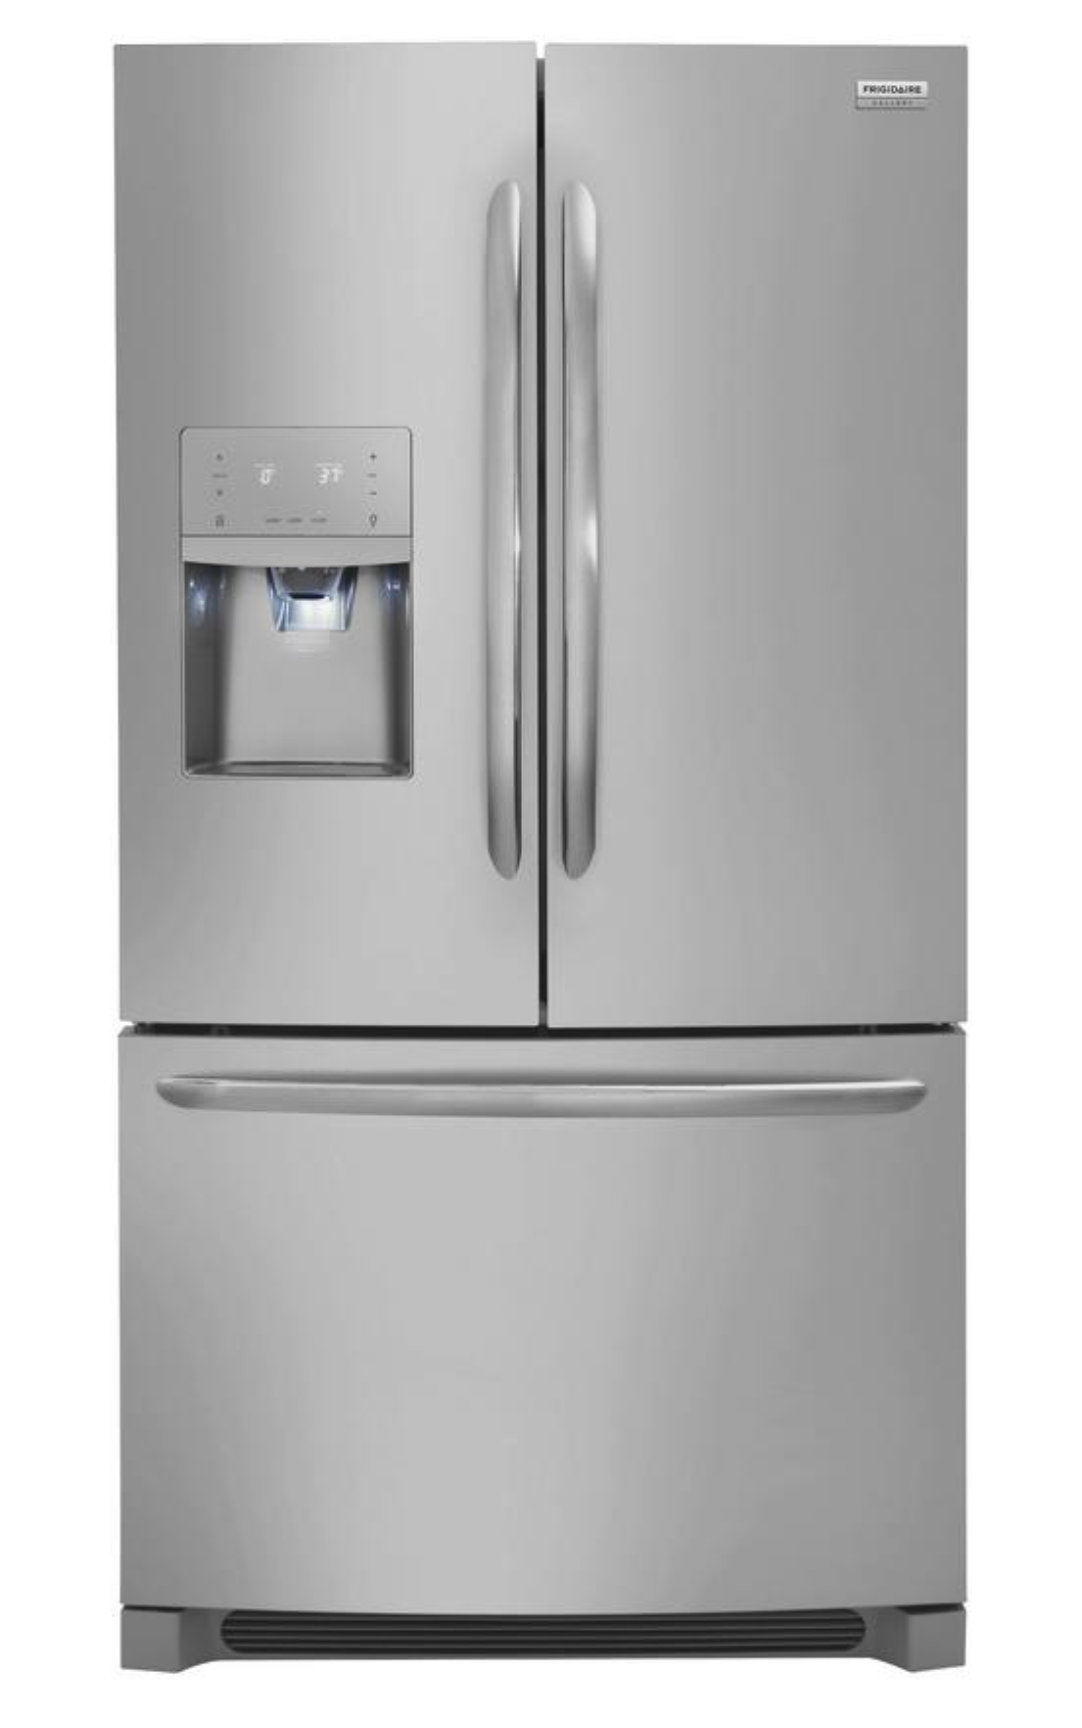 1. Fridge - Fridgidaire from Home Depot